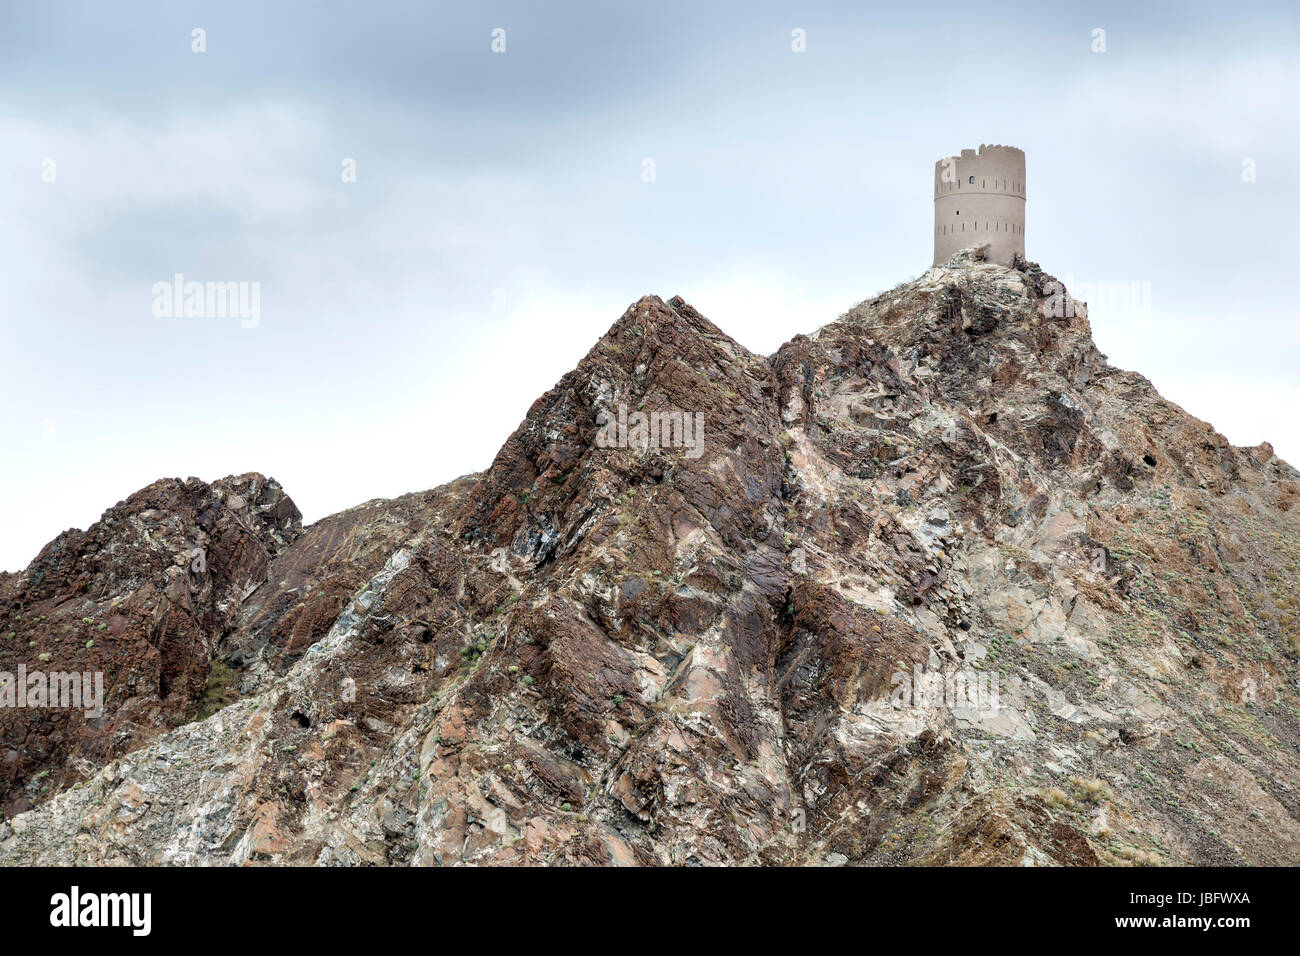 Picture of a historic tower in Muscat, Oman Stock Photo